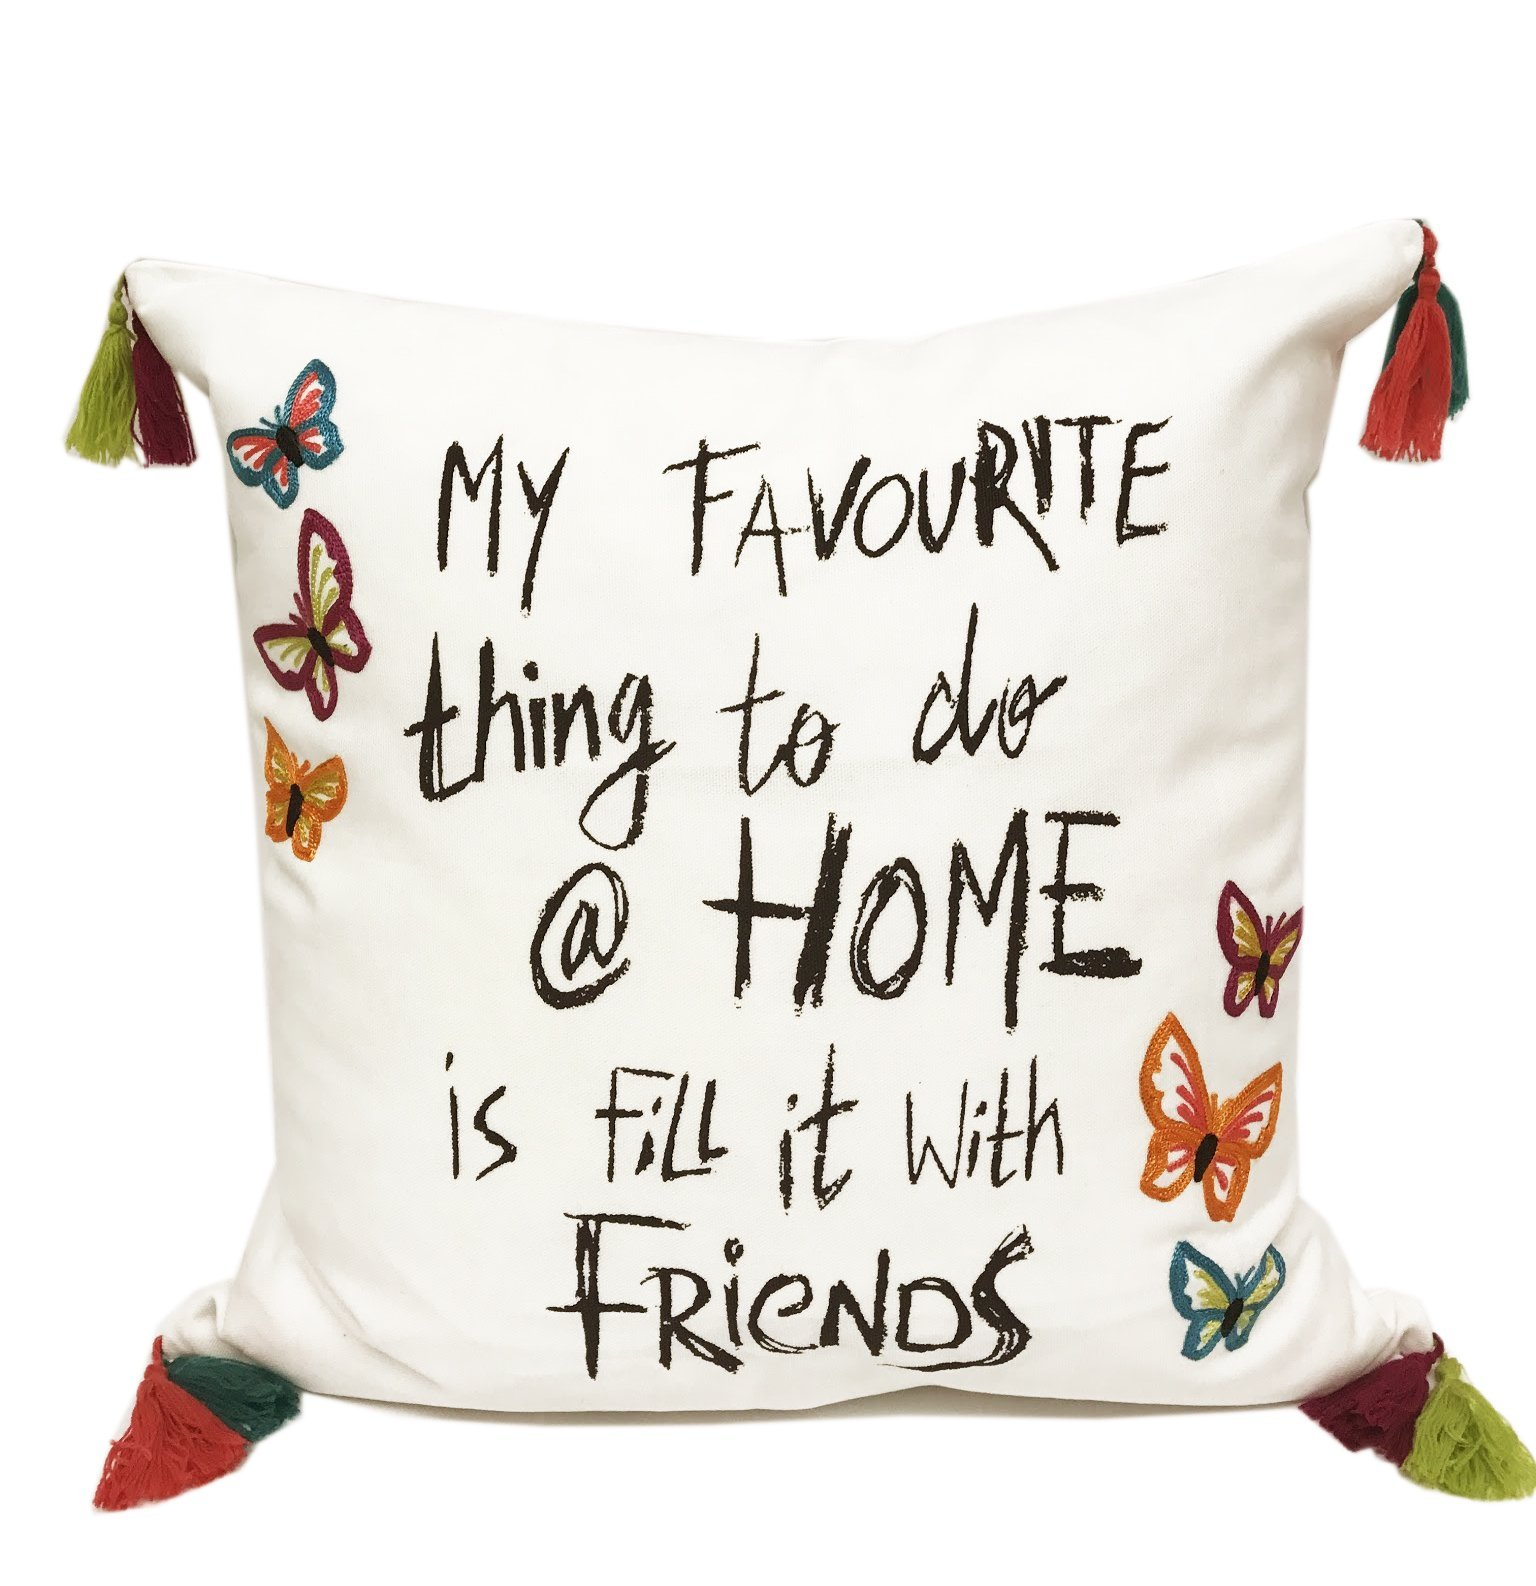 Fennco Styles Fun Inspirational Embroidered And Tasseled Decorative Throw Pillow